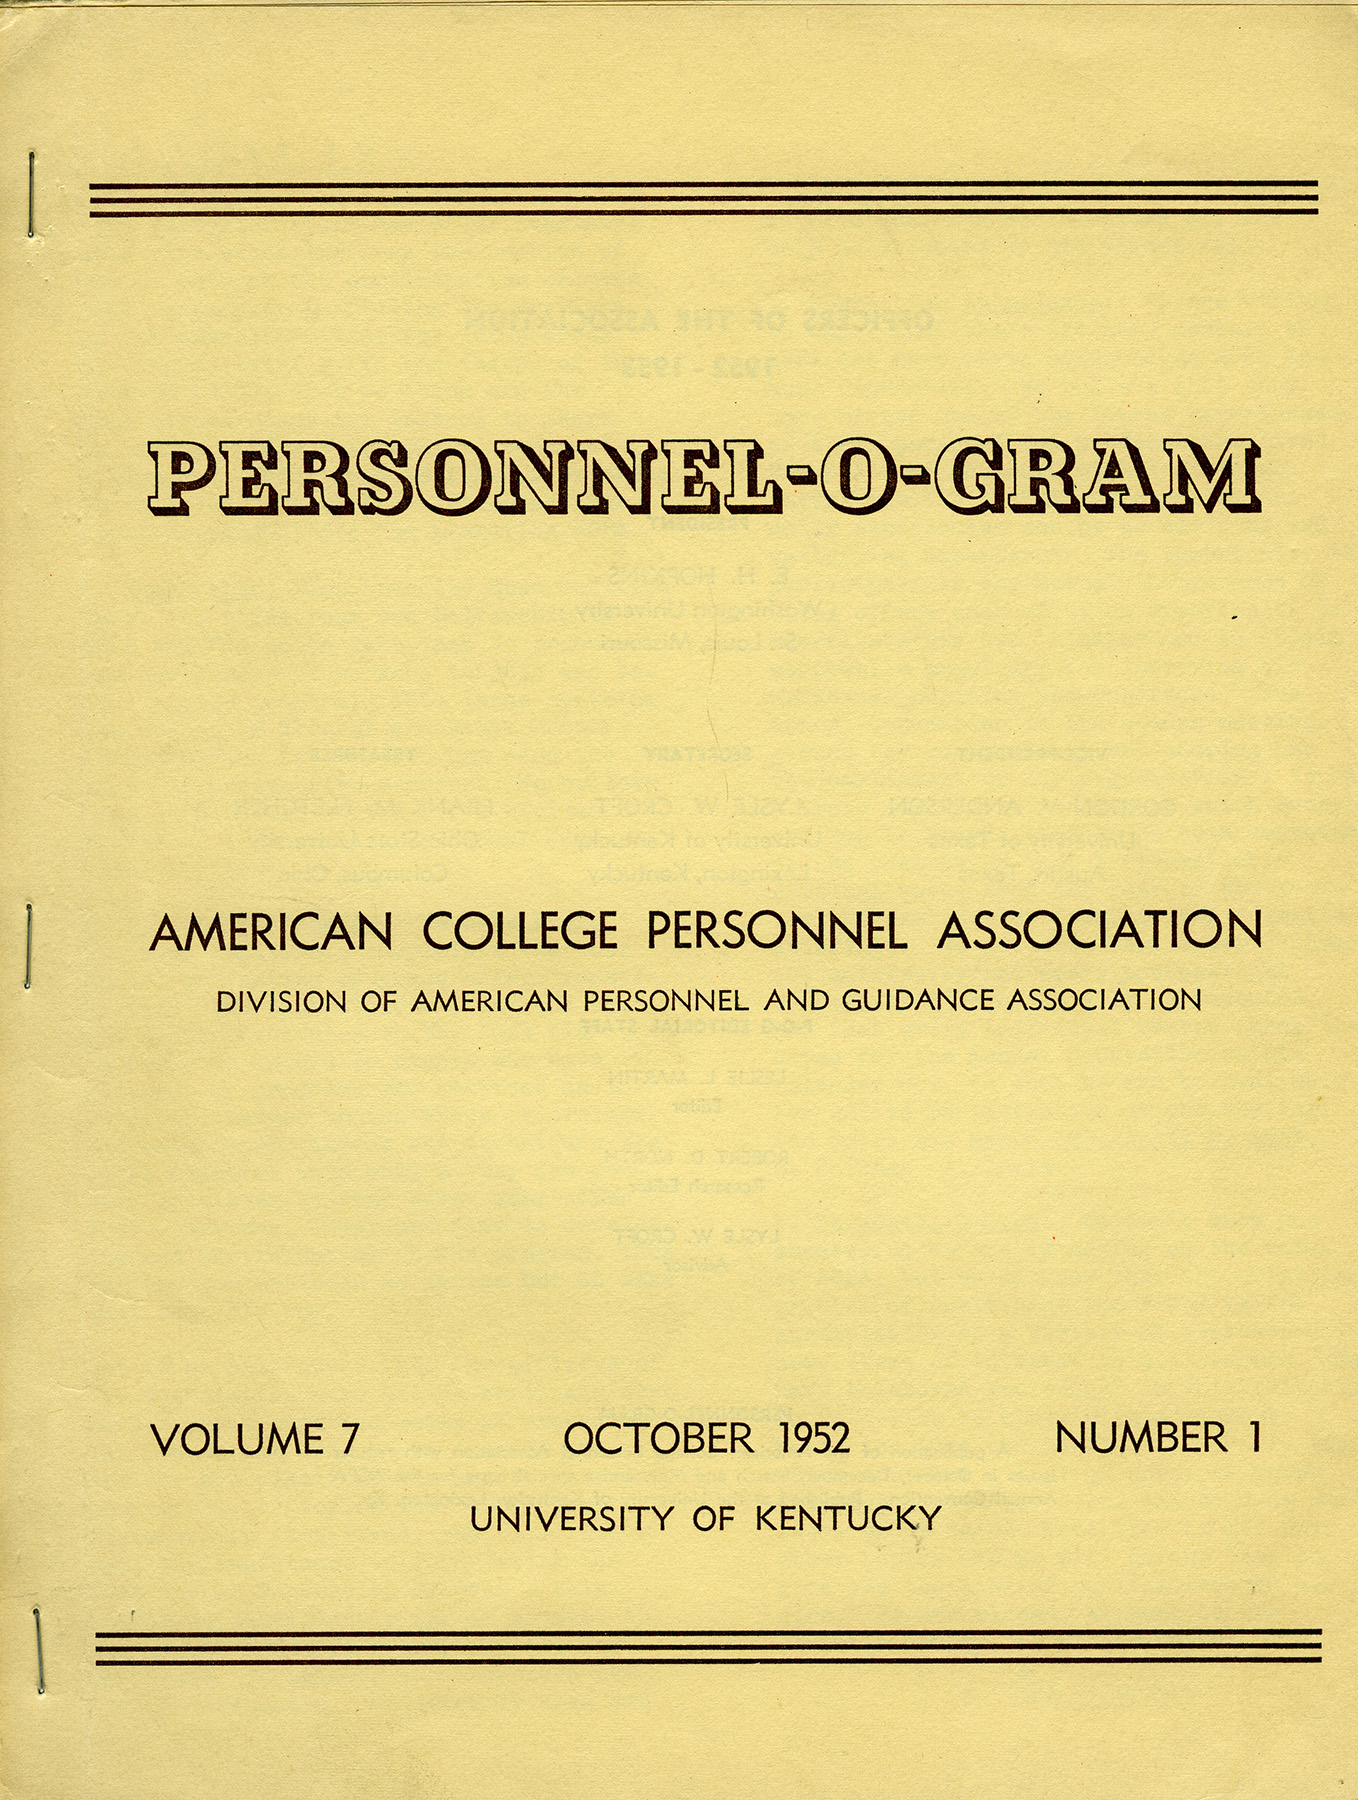 The Evolving Image of the Personnel-O-Gram